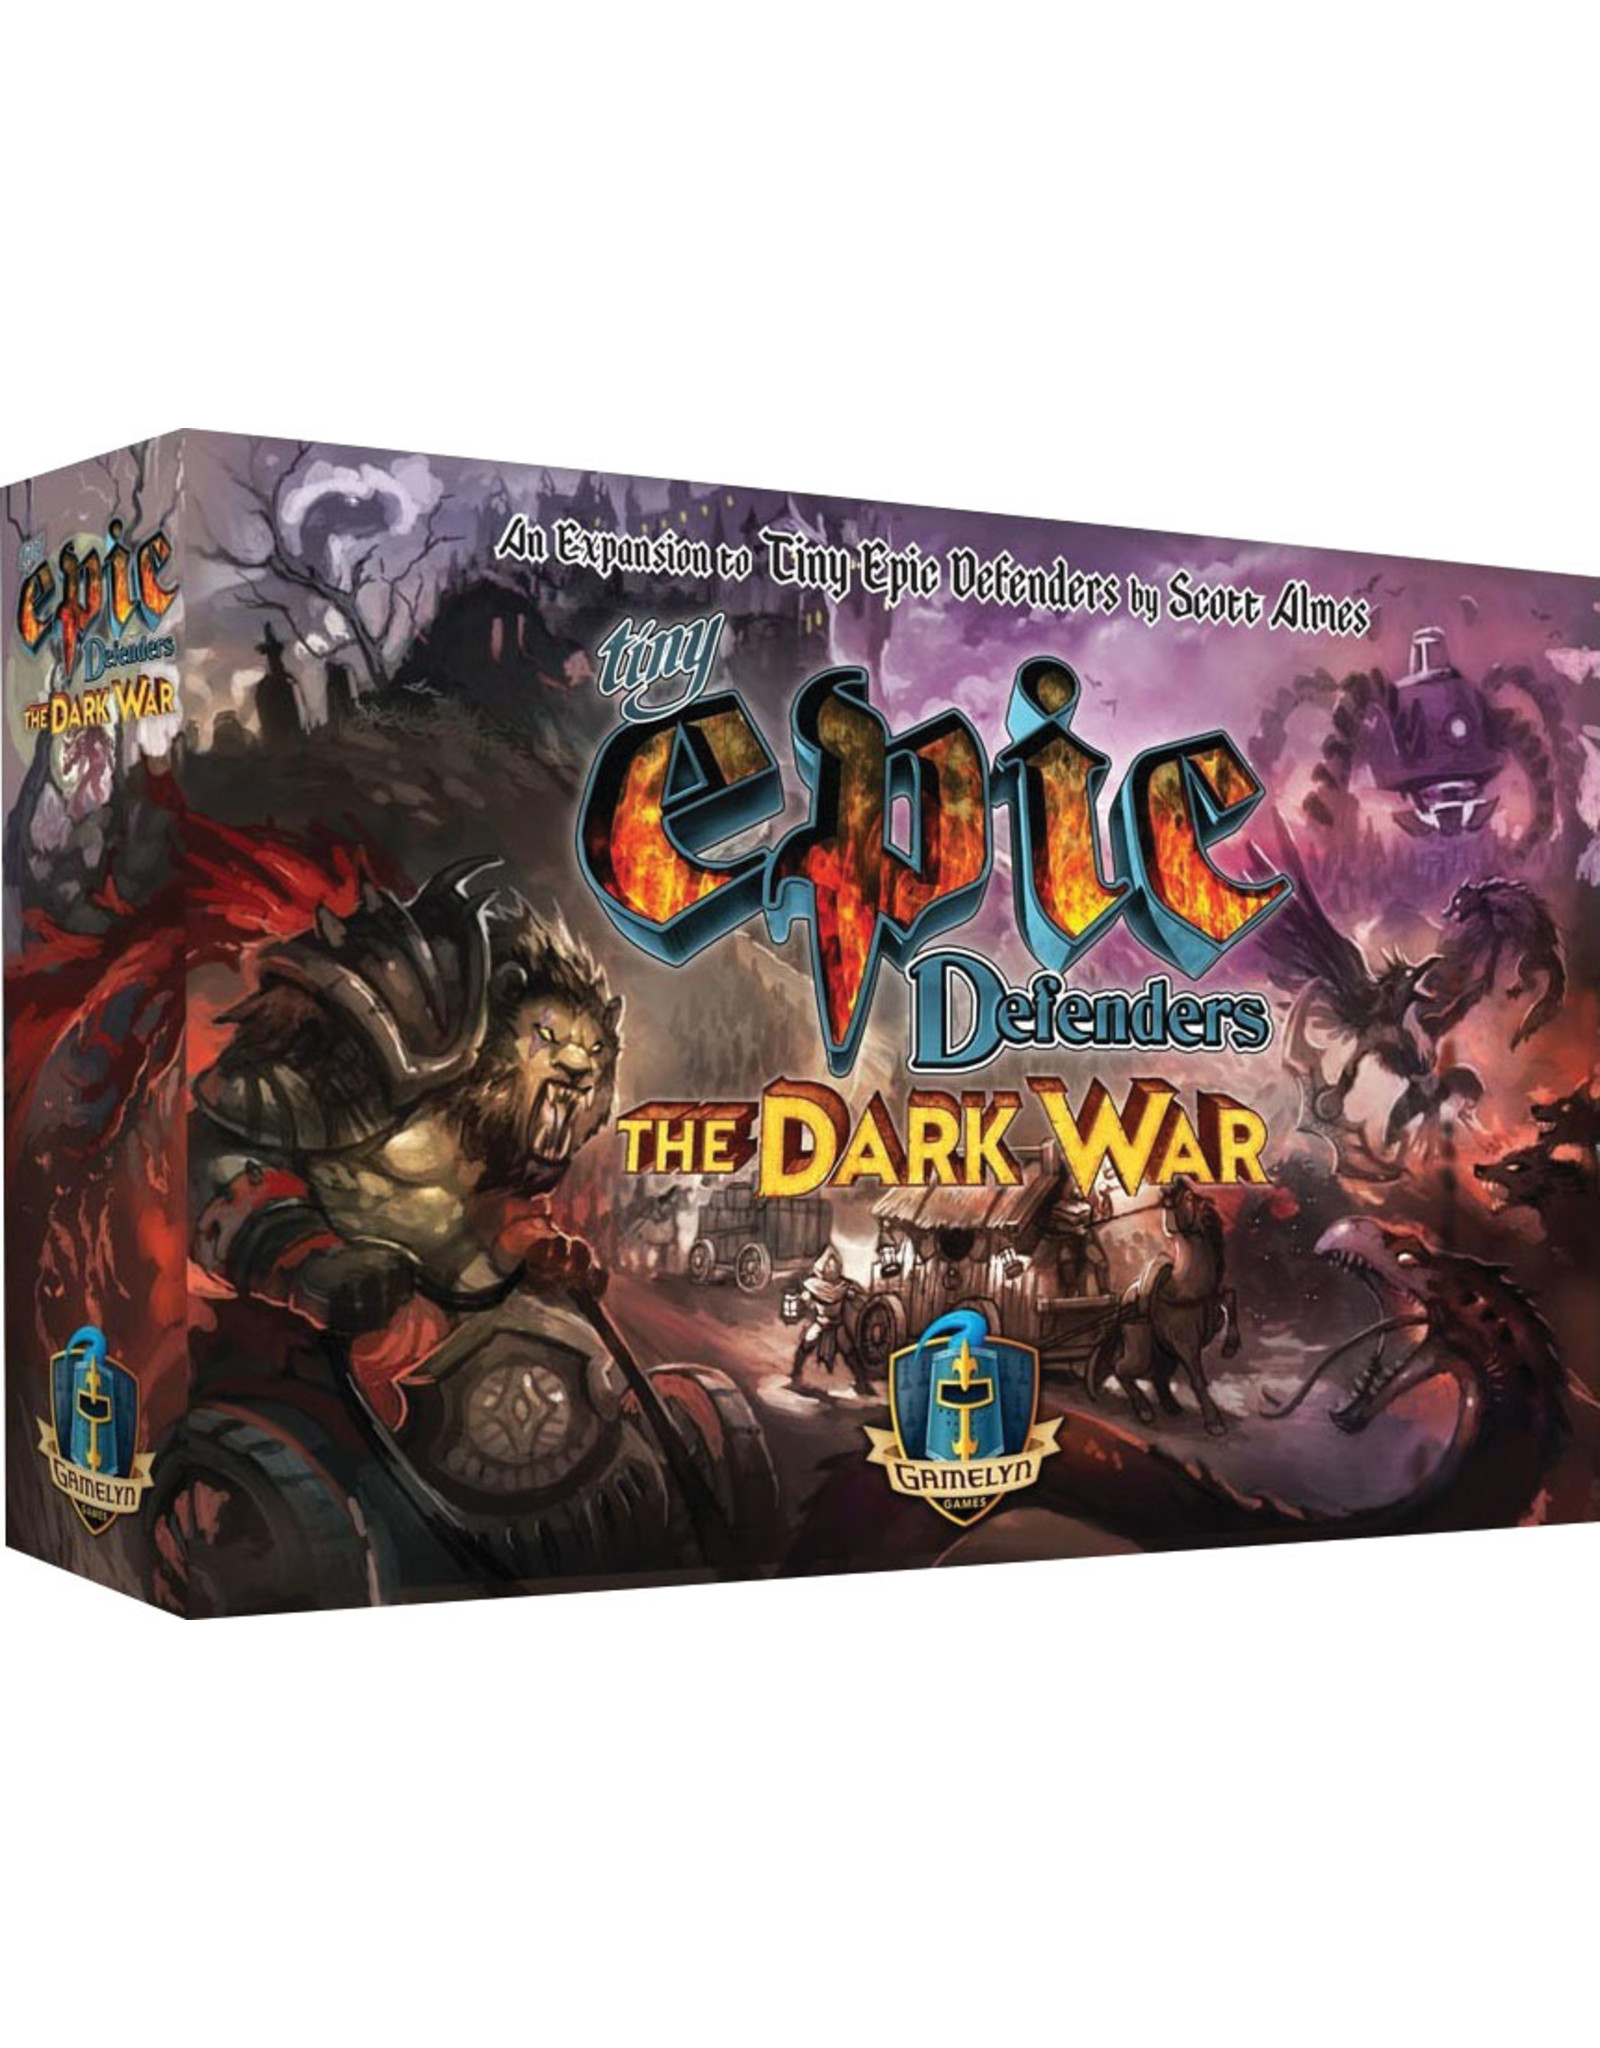 Gamelyn Games Tiny Epic Defenders: The Dark War Expansion